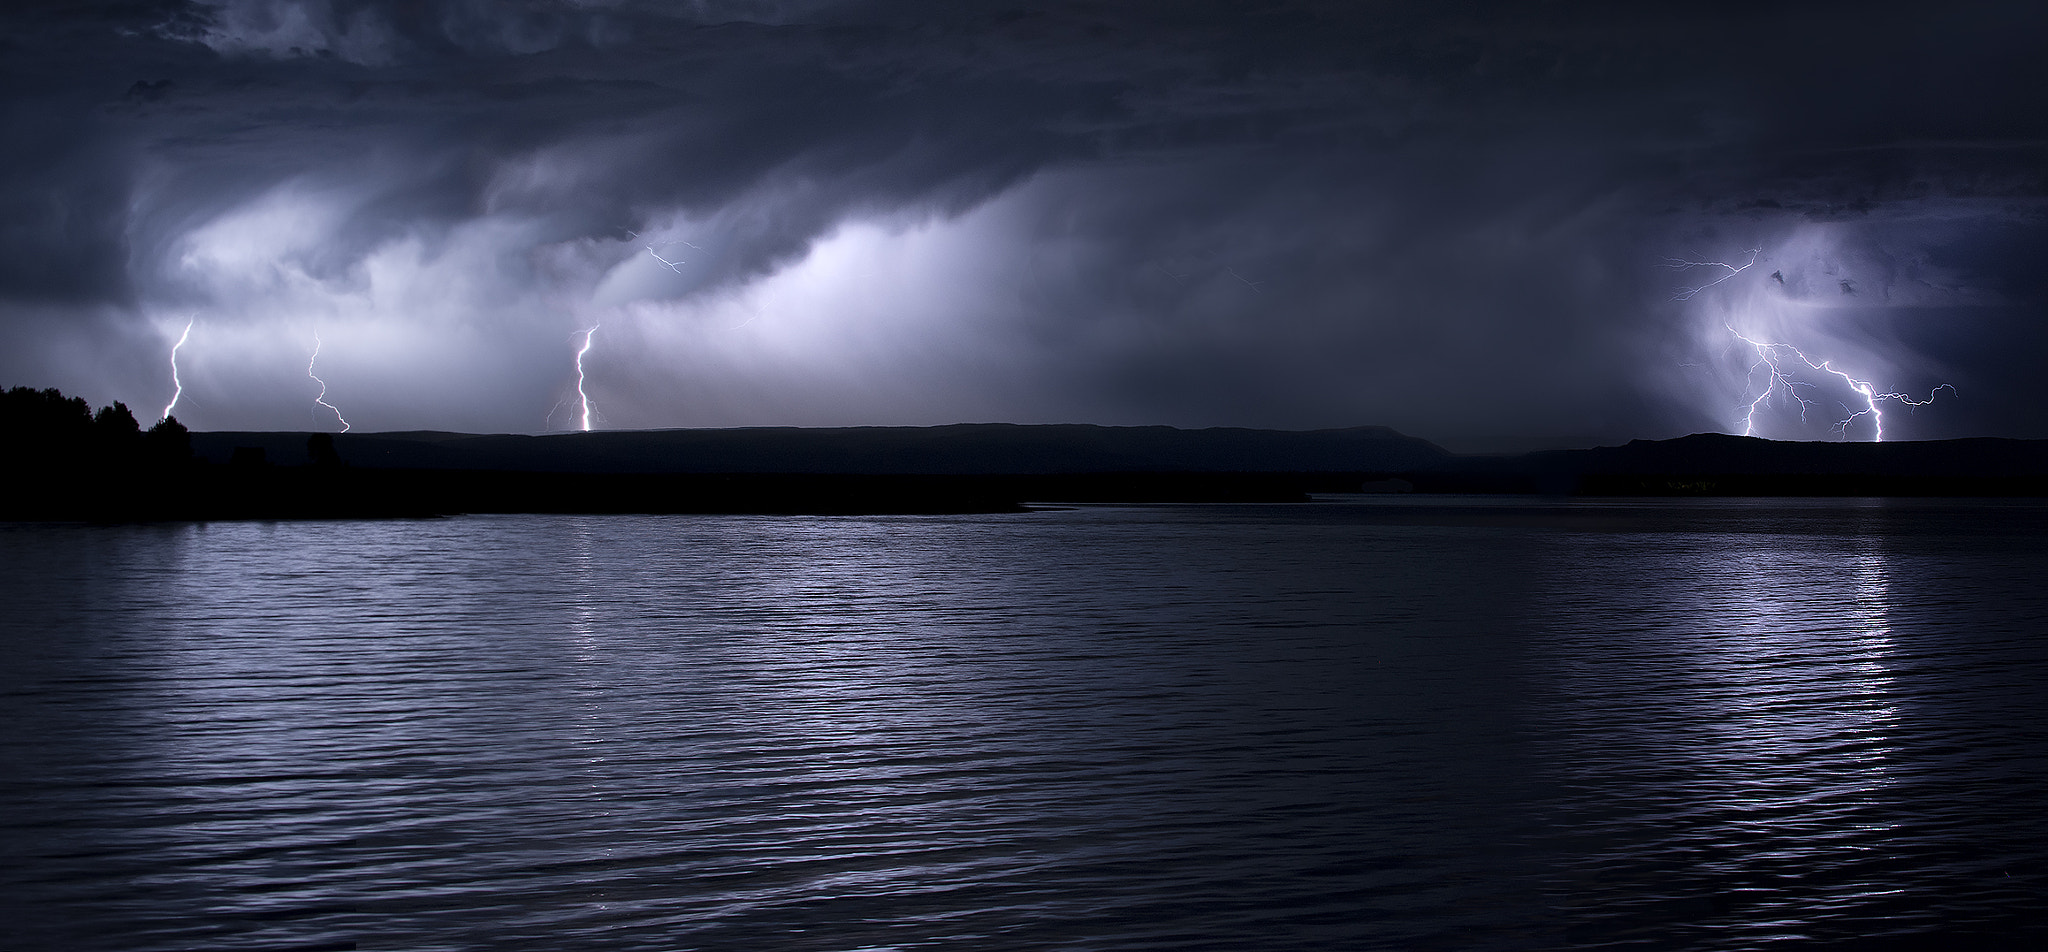 Photograph Montana Lightning Storm - Composite by Tobias Smith on 500px